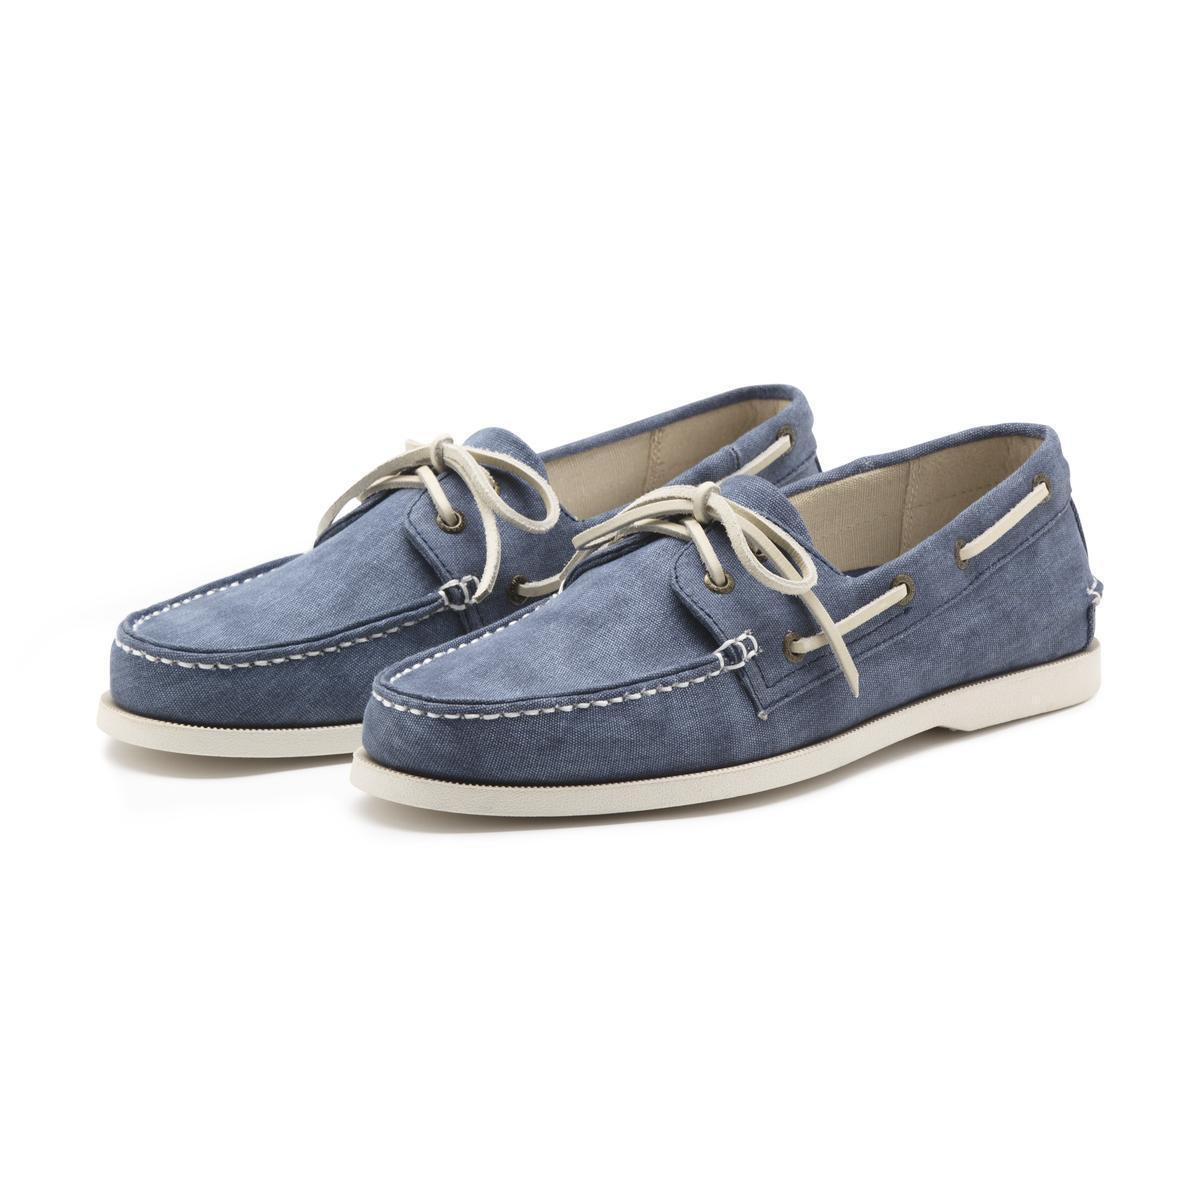 Lyst - G.h. Bass U0026 Co. Hampton Canvas Boater In Blue For Men